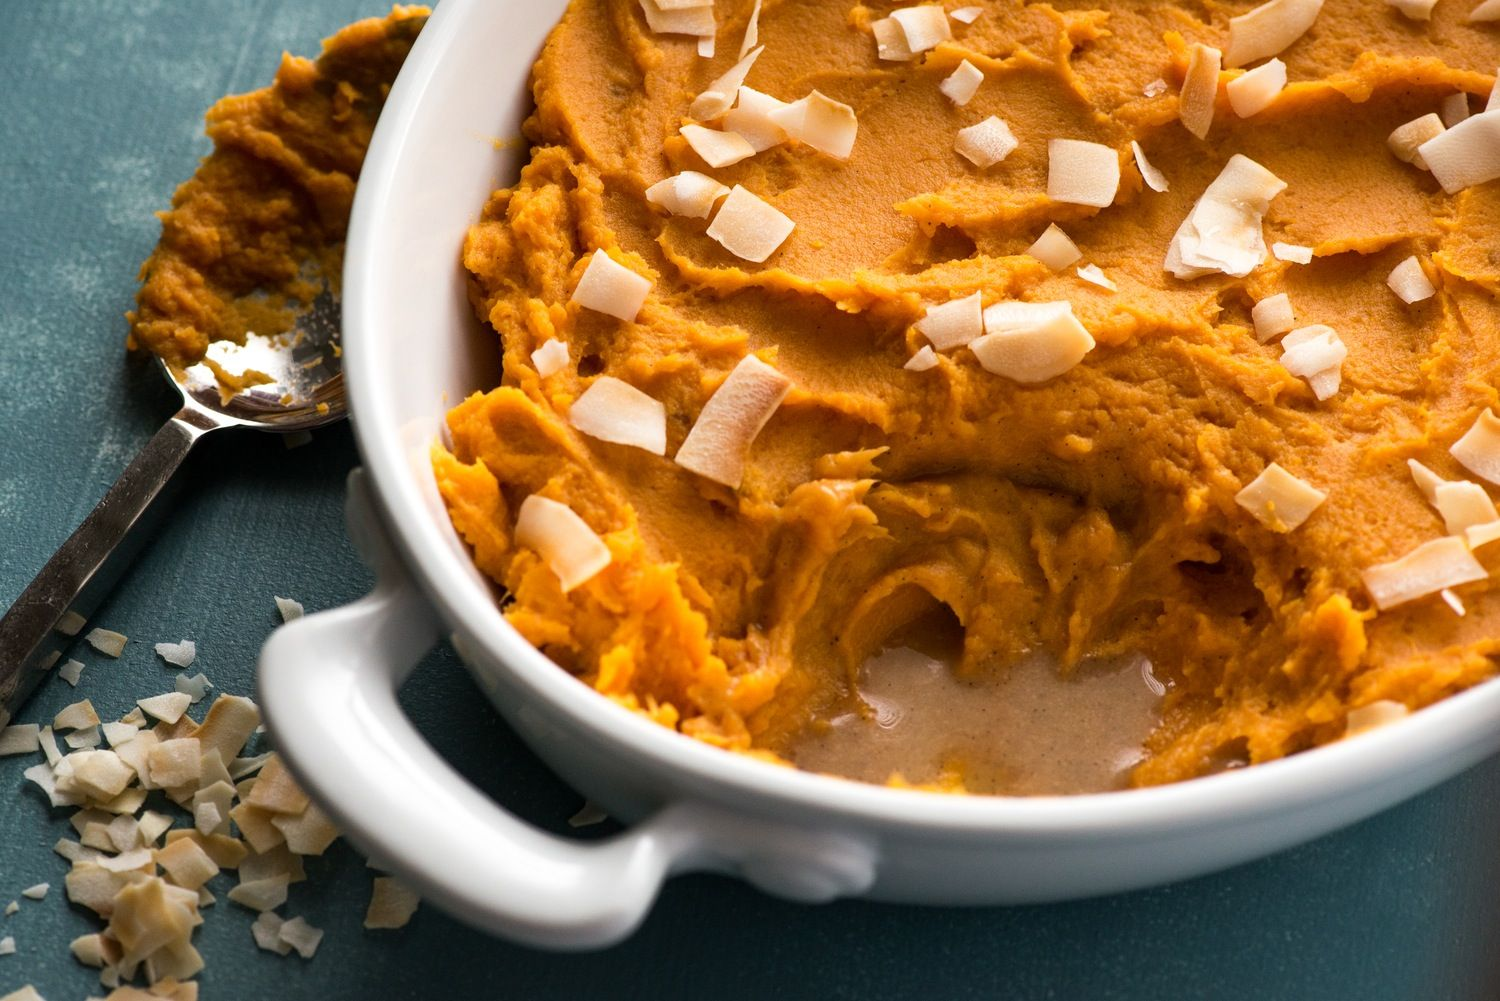 These whipped sweet potatoes are a great recipe when you need to get out of a vegetable rut. They're a little more dressed up than the average weeknight side so think of them as a minimalist dish for your holiday feast. With coconut milk for interest and richness, and a swirl of vanilla bean paste, consider adding this to the Thanksgiving table when you want something on the sweeter side that still leaves the marshmallows out of the equation.